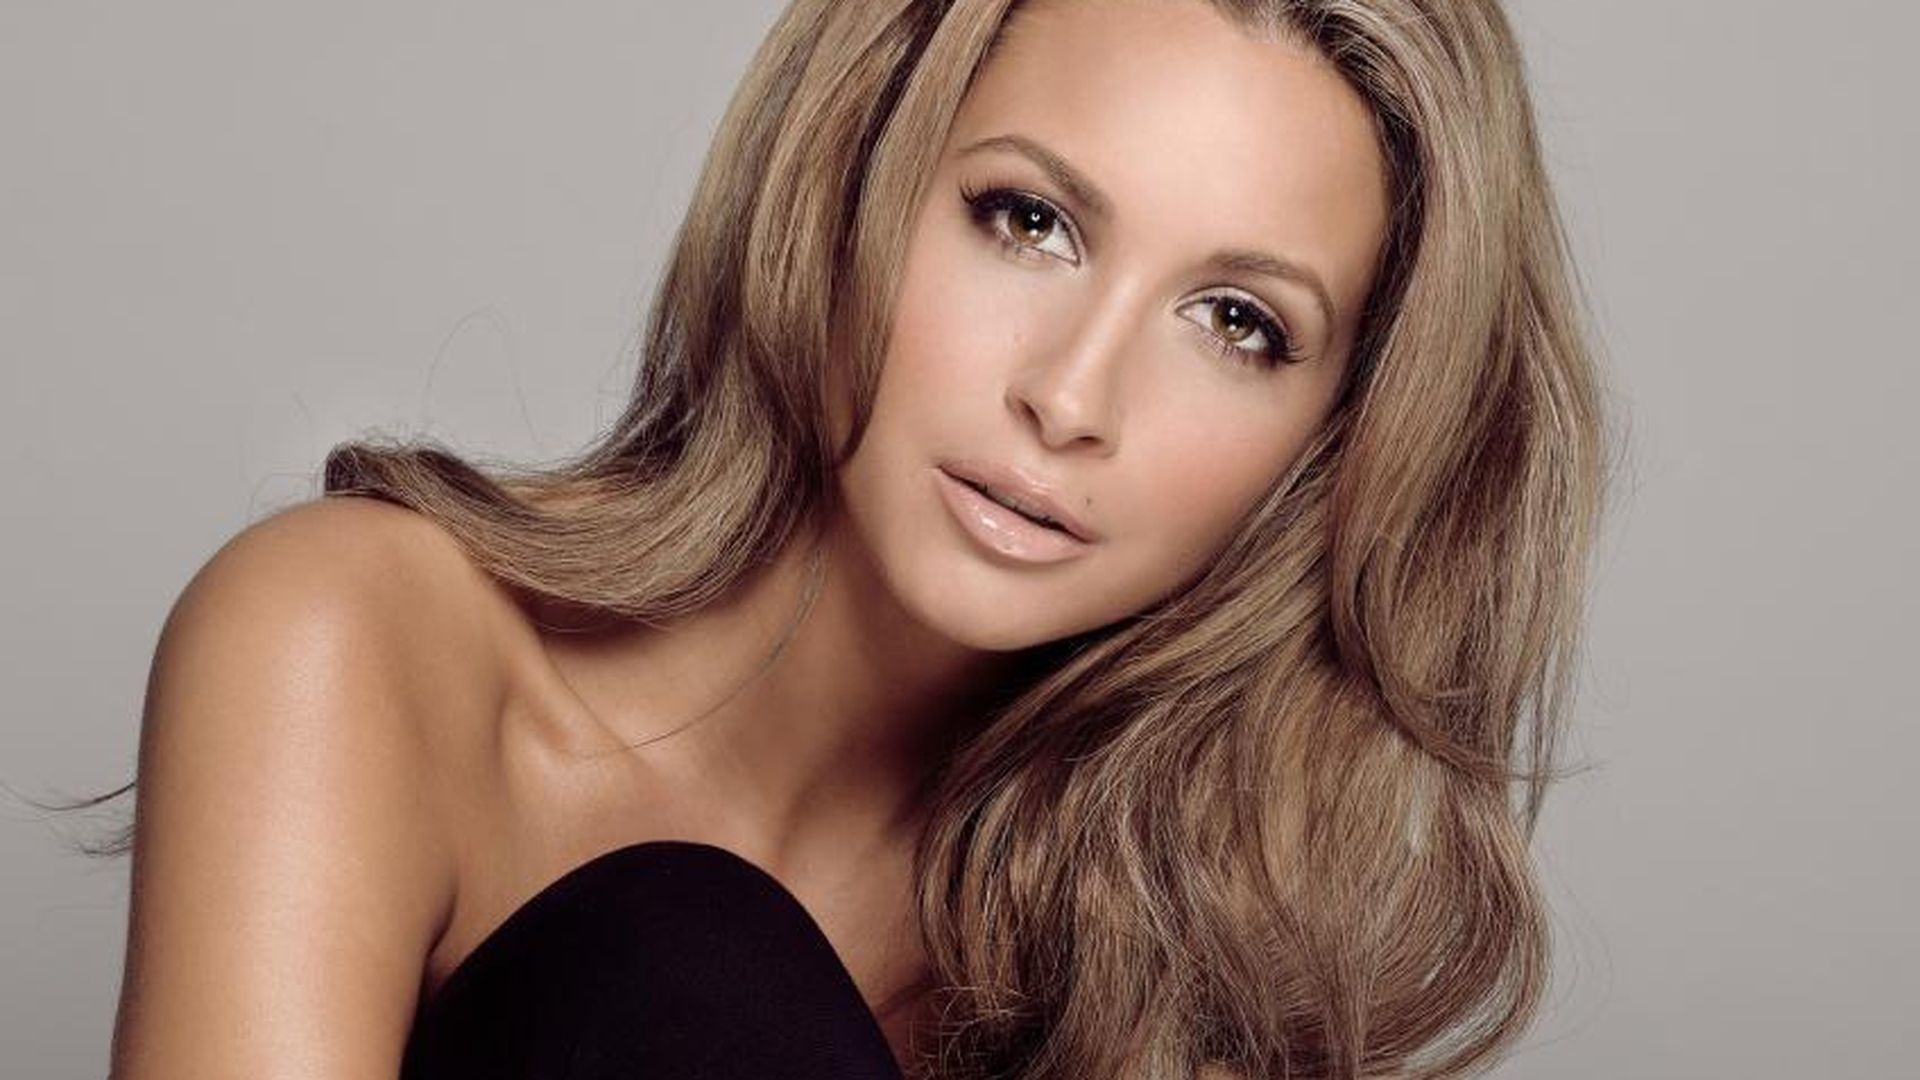 mandy capristo darum gibt es zwei video versionen. Black Bedroom Furniture Sets. Home Design Ideas